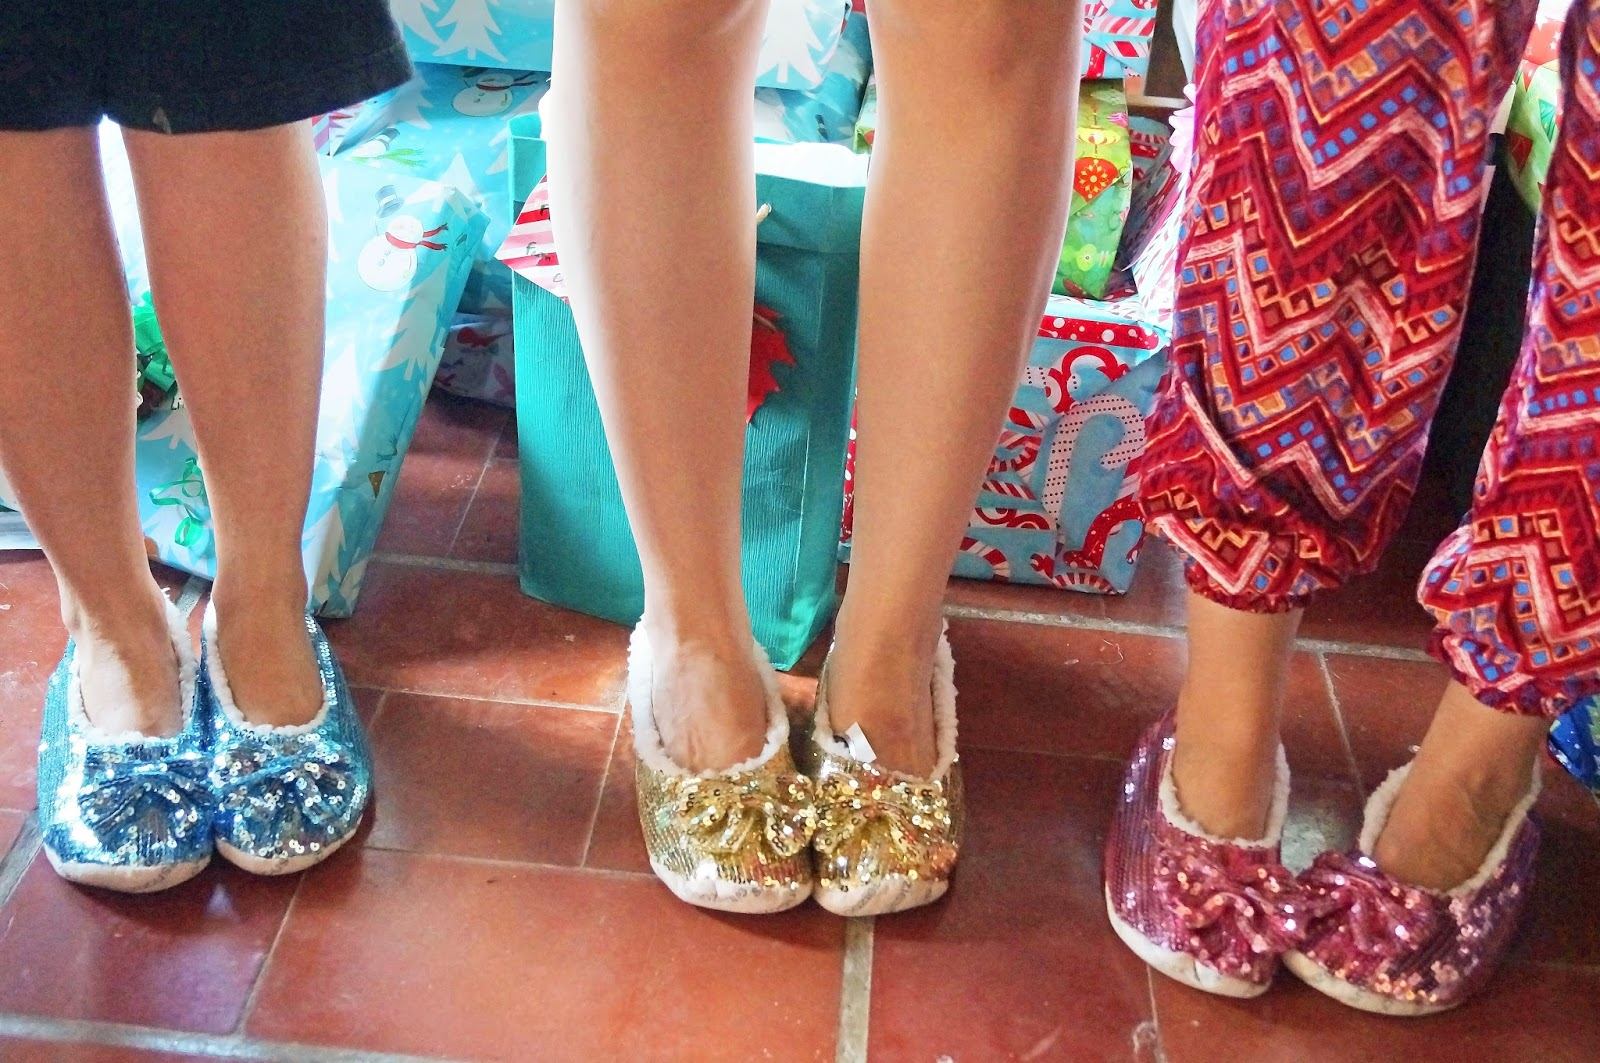 Jazz up your style at home with these cute and comfy sequin slippers!